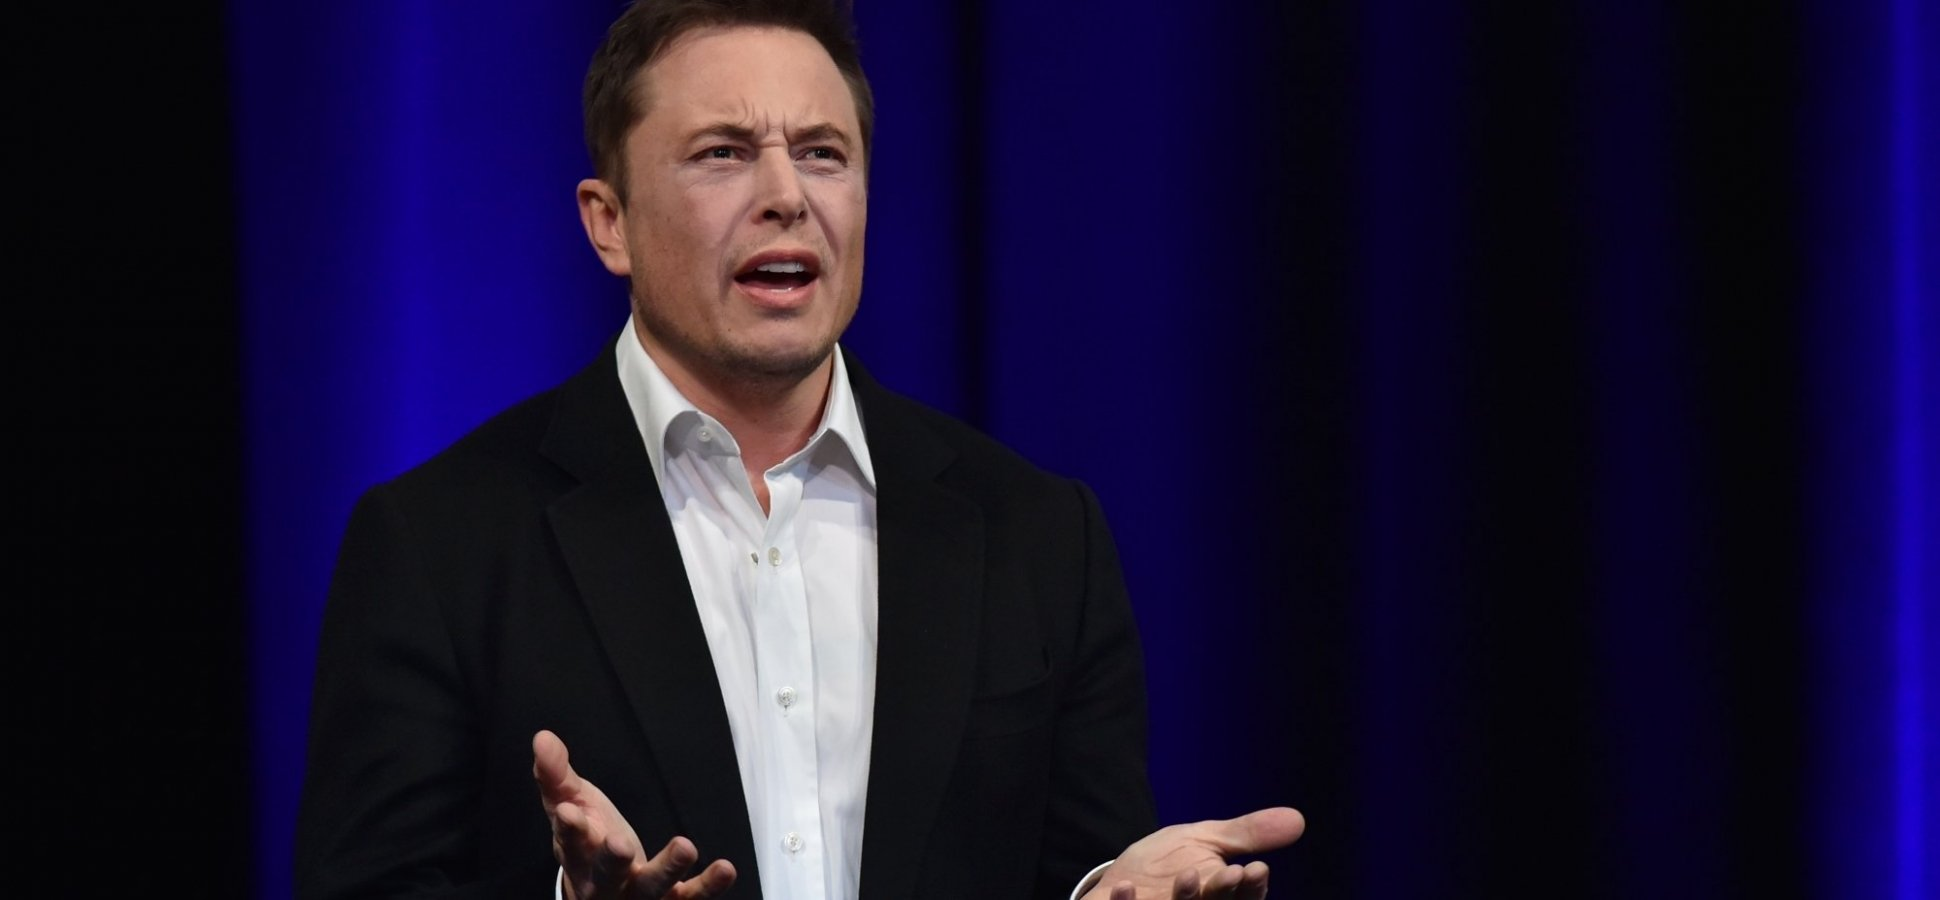 10 Head-Shaking Moments From Elon Musk's Stunning Companywide Emails (Including Sunday's 'Big Sabotage' Email)